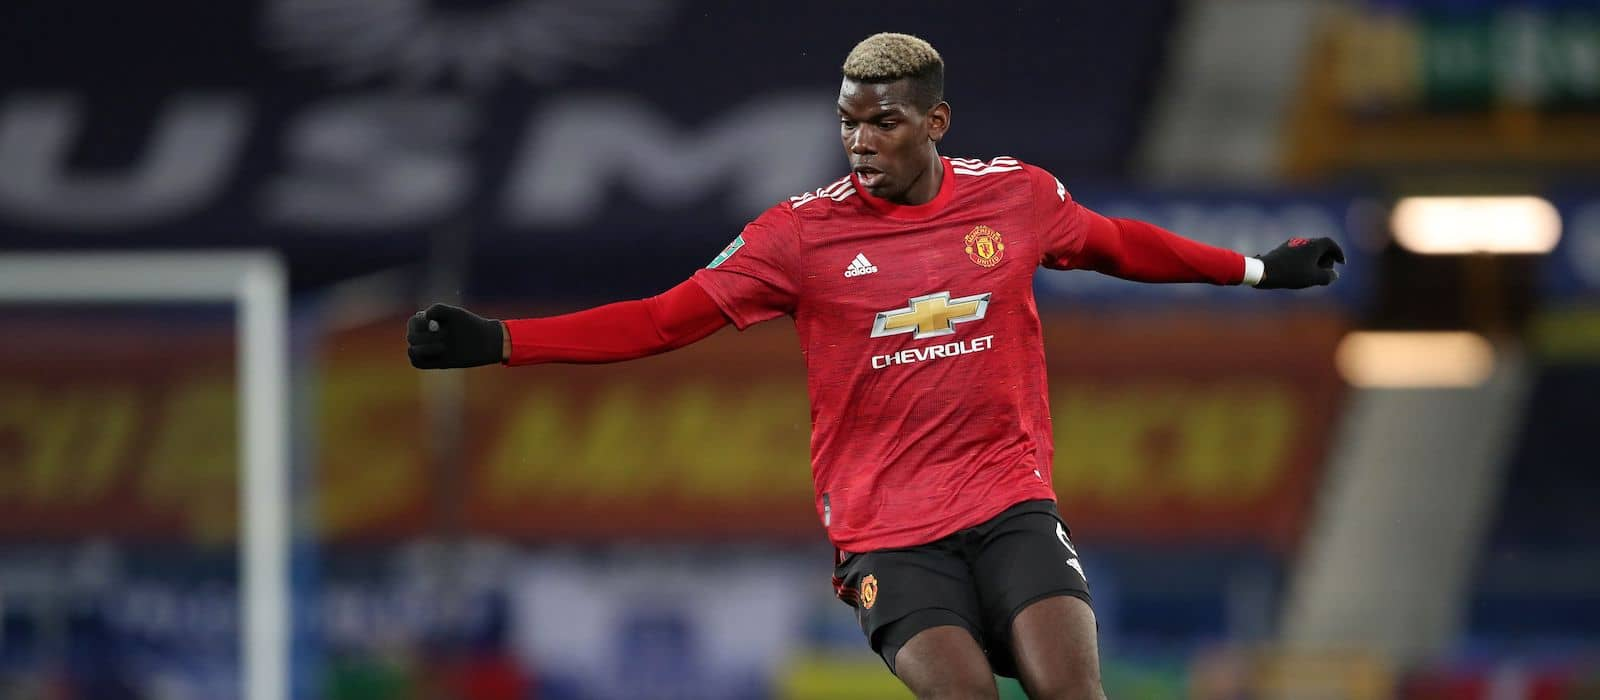 Paul Pogba crucial in Manchester United's engine room vs Everton